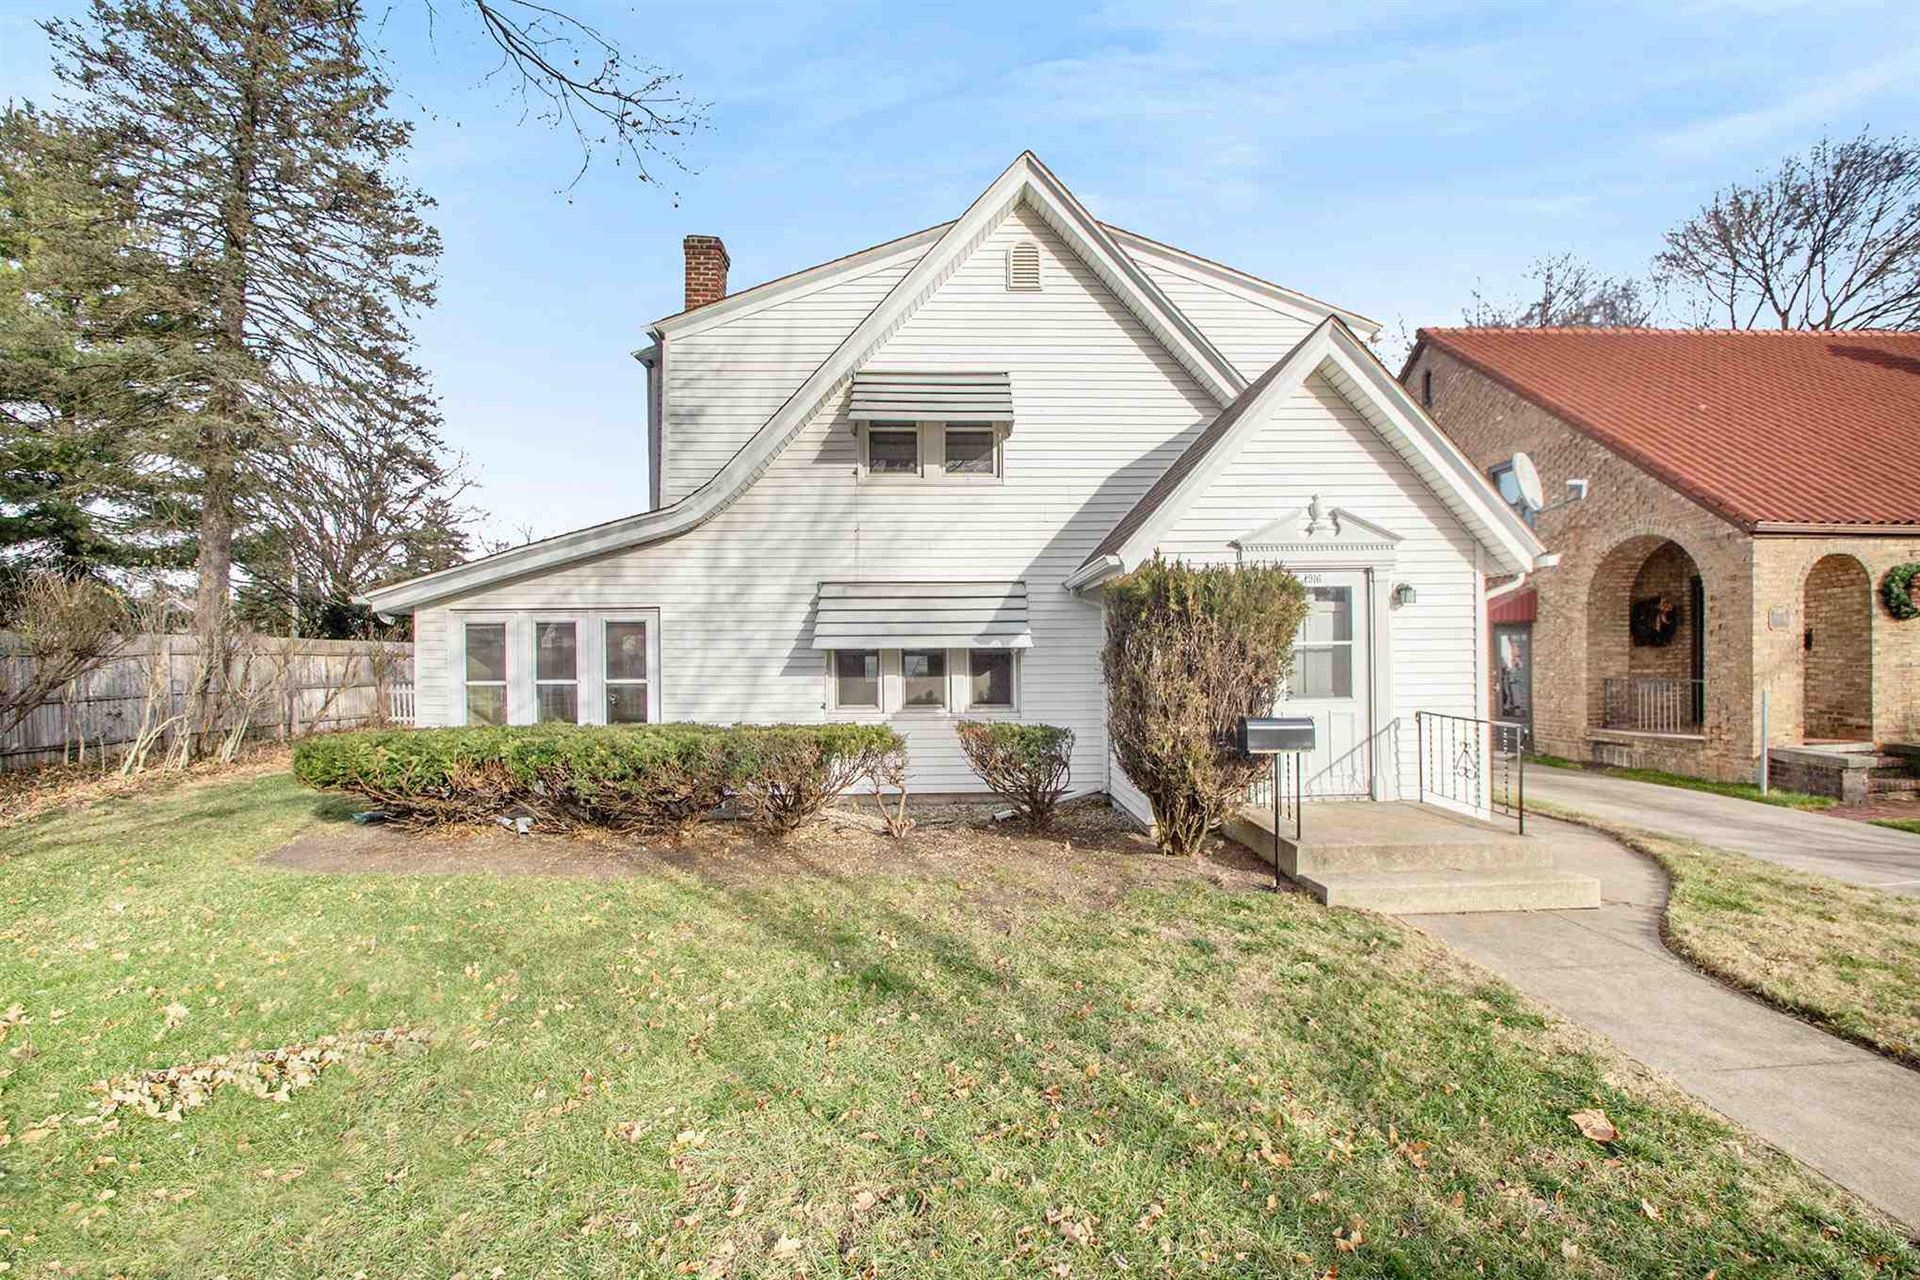 1916 Portage Avenue, South Bend, IN 46616 - #: 201952183